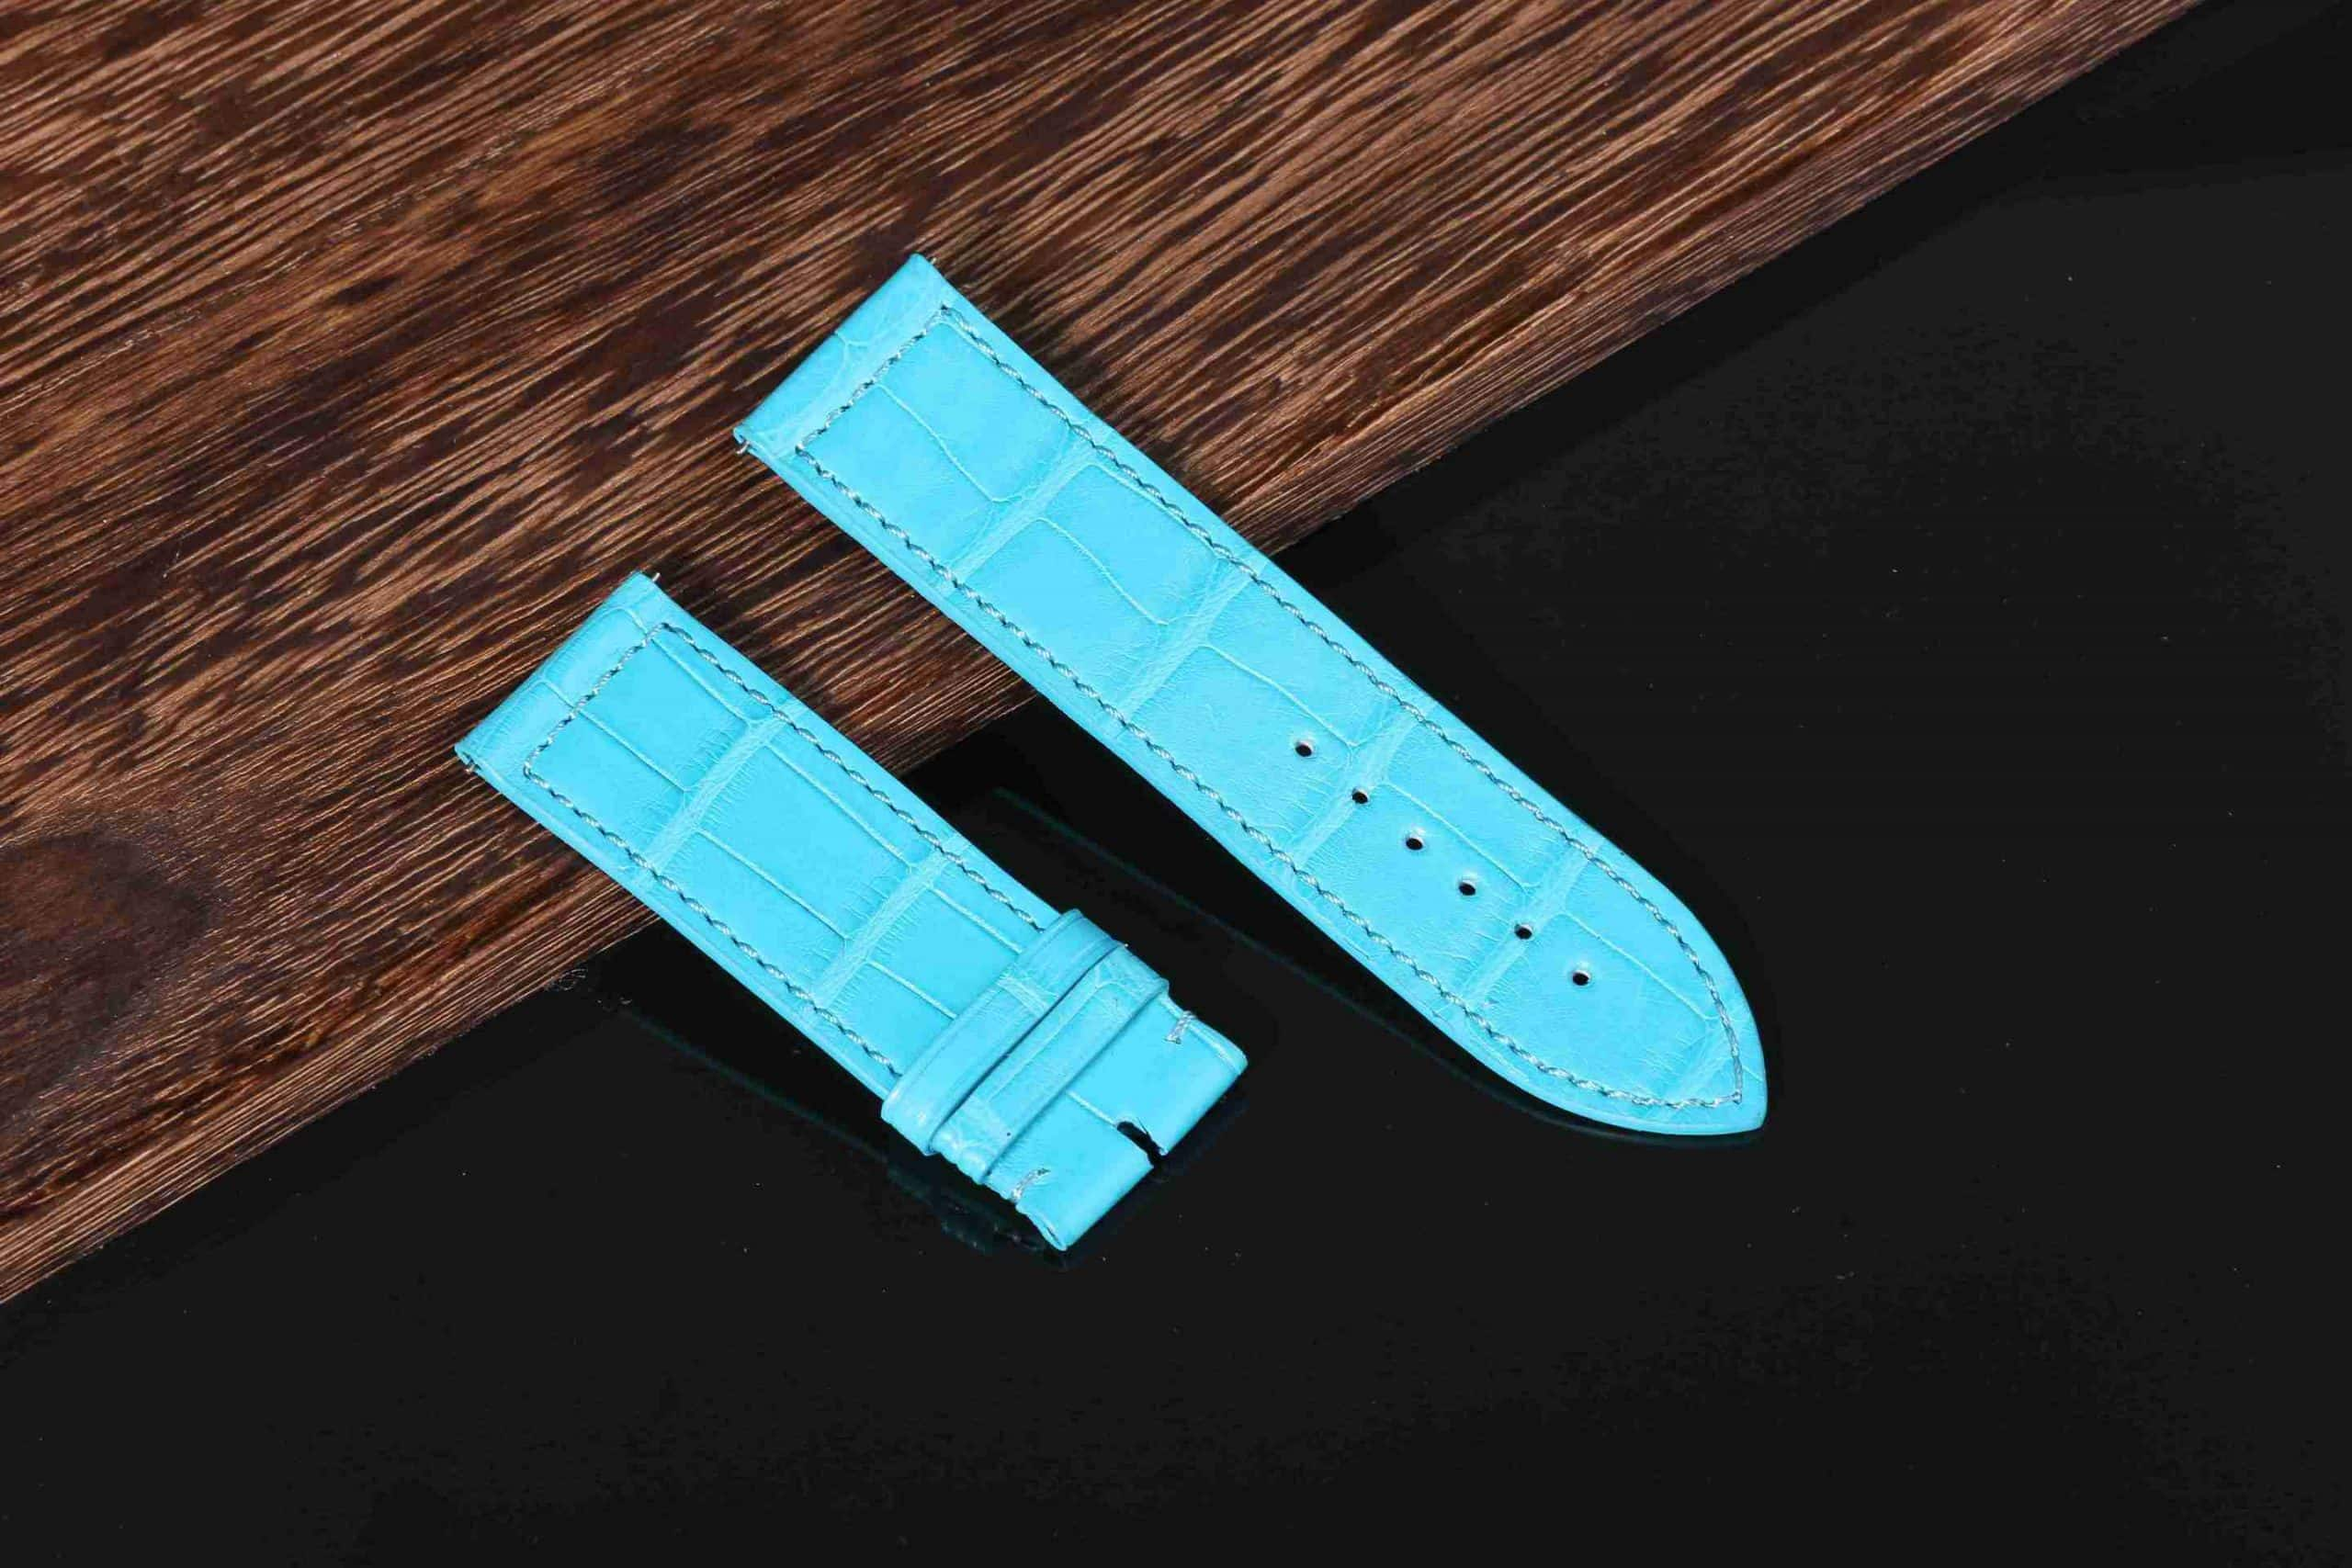 Replacement Blue leather strap for Franck Muller Long Island watch